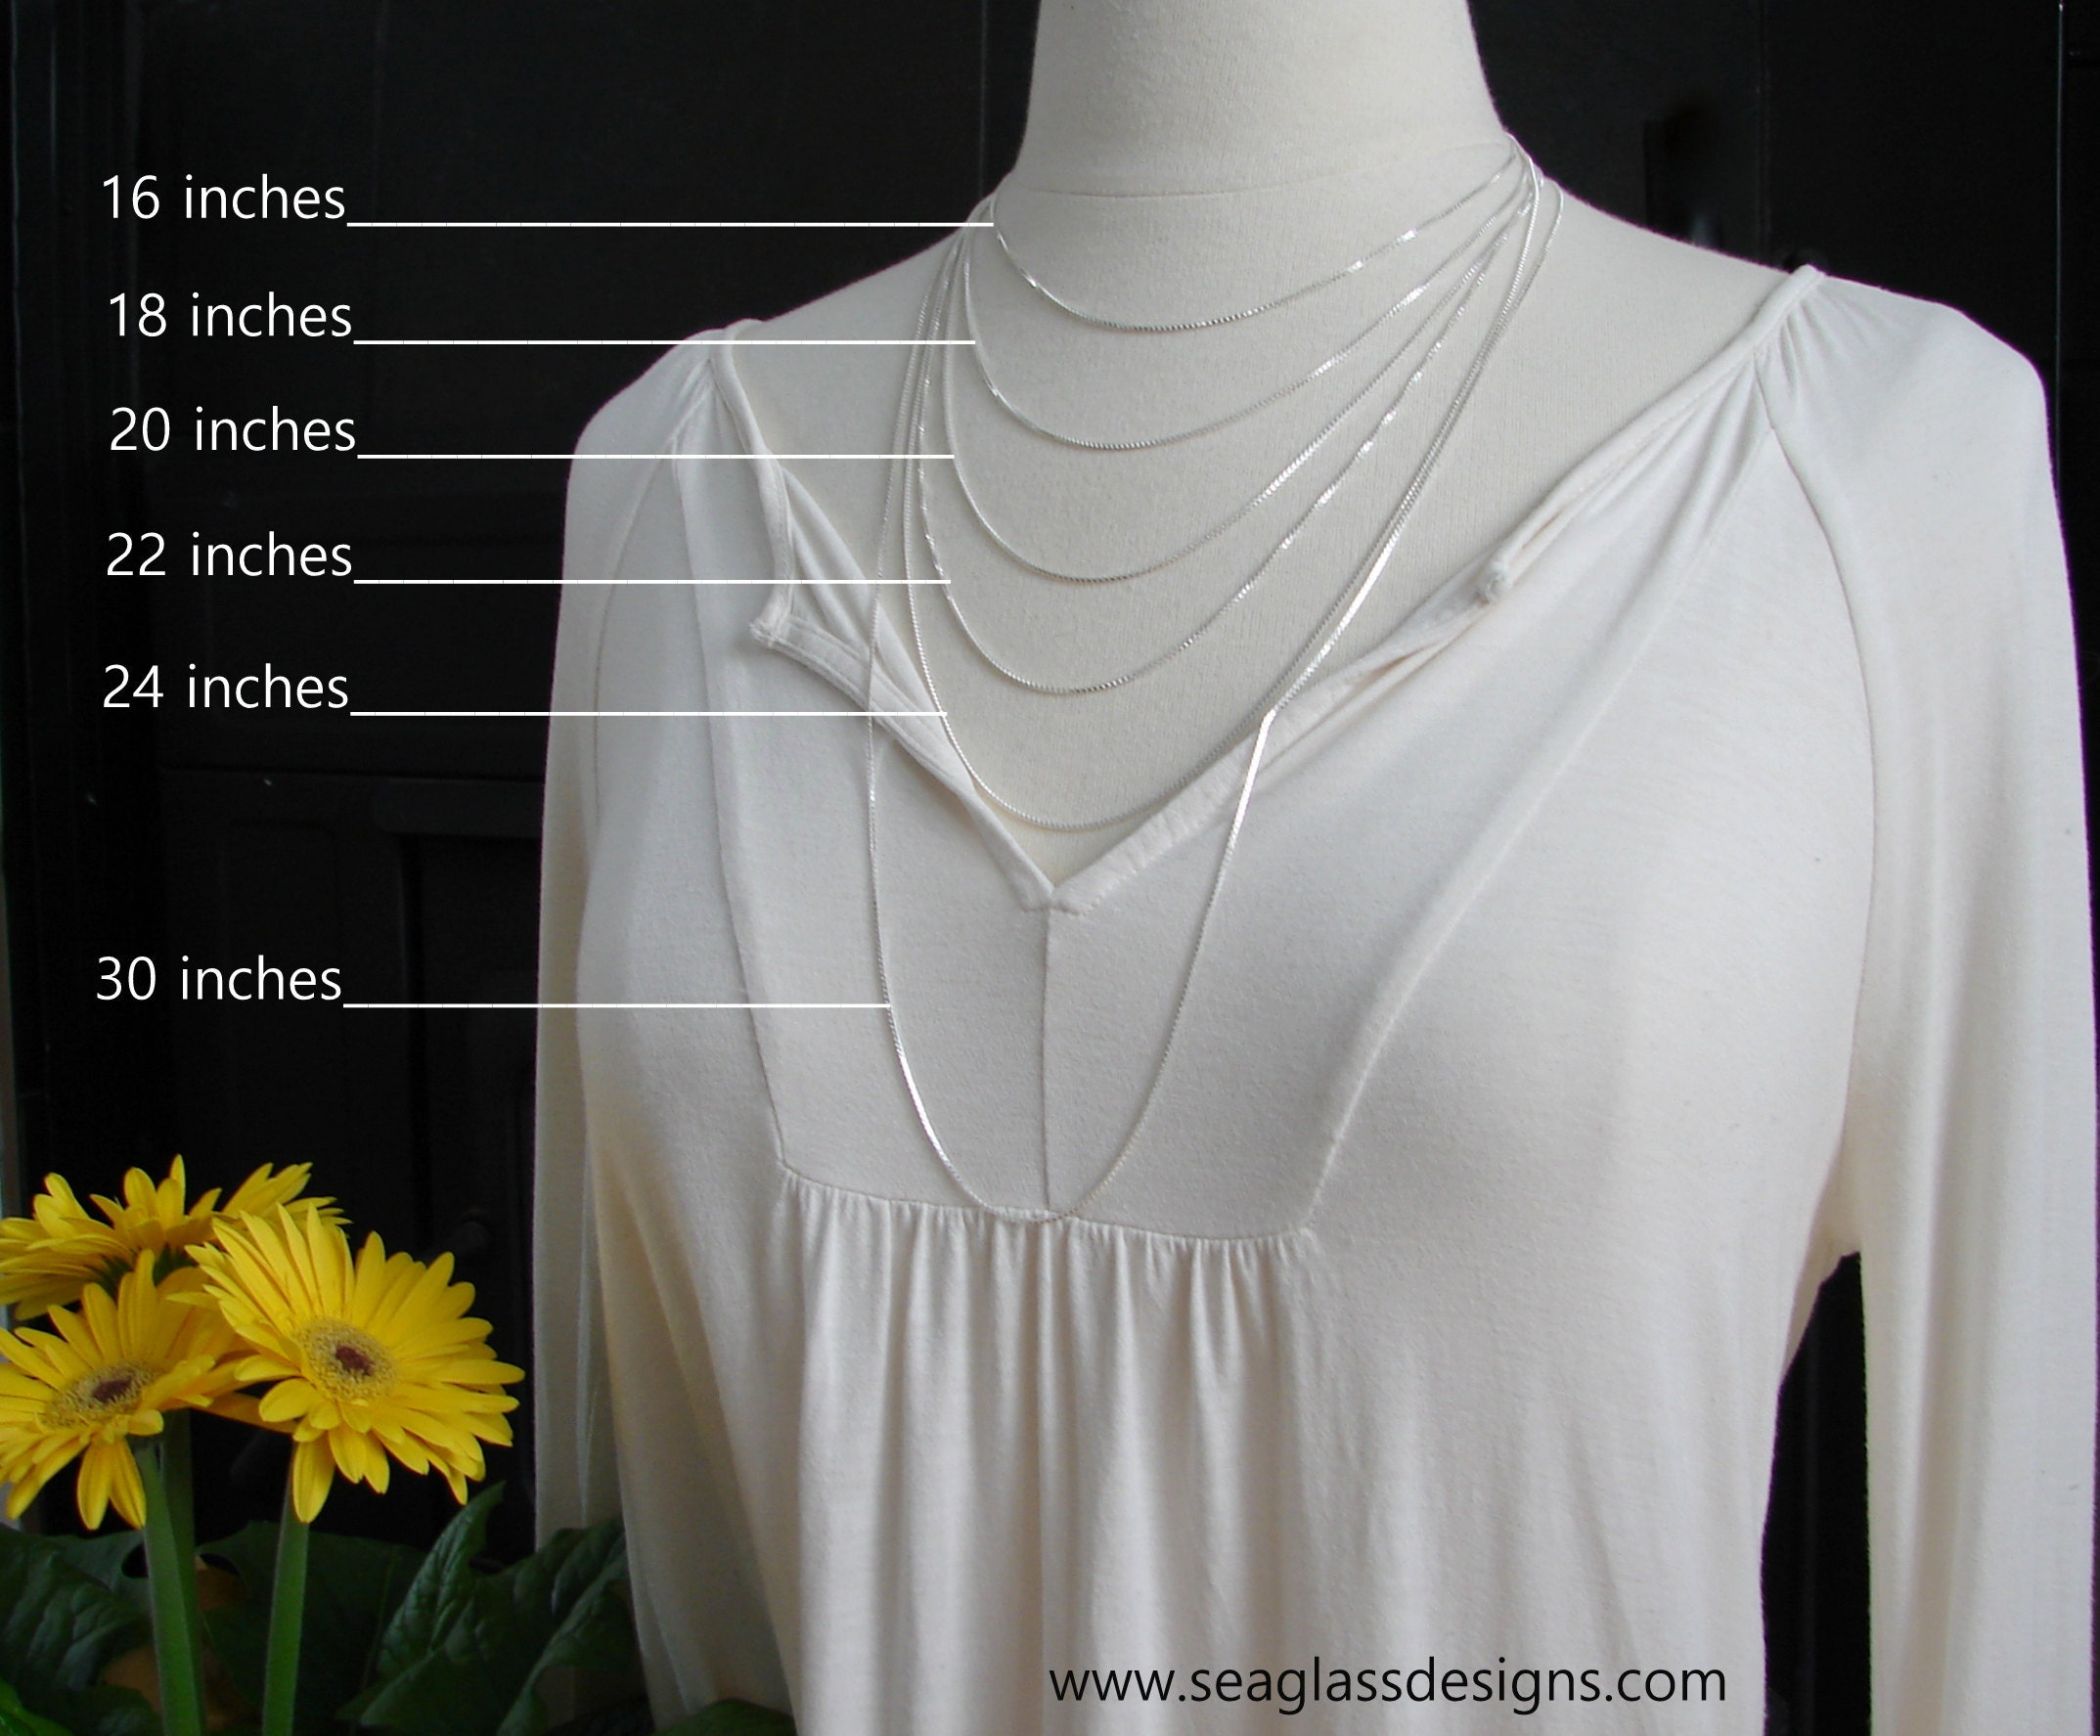 Necklace length guide by Sea Glass Designs